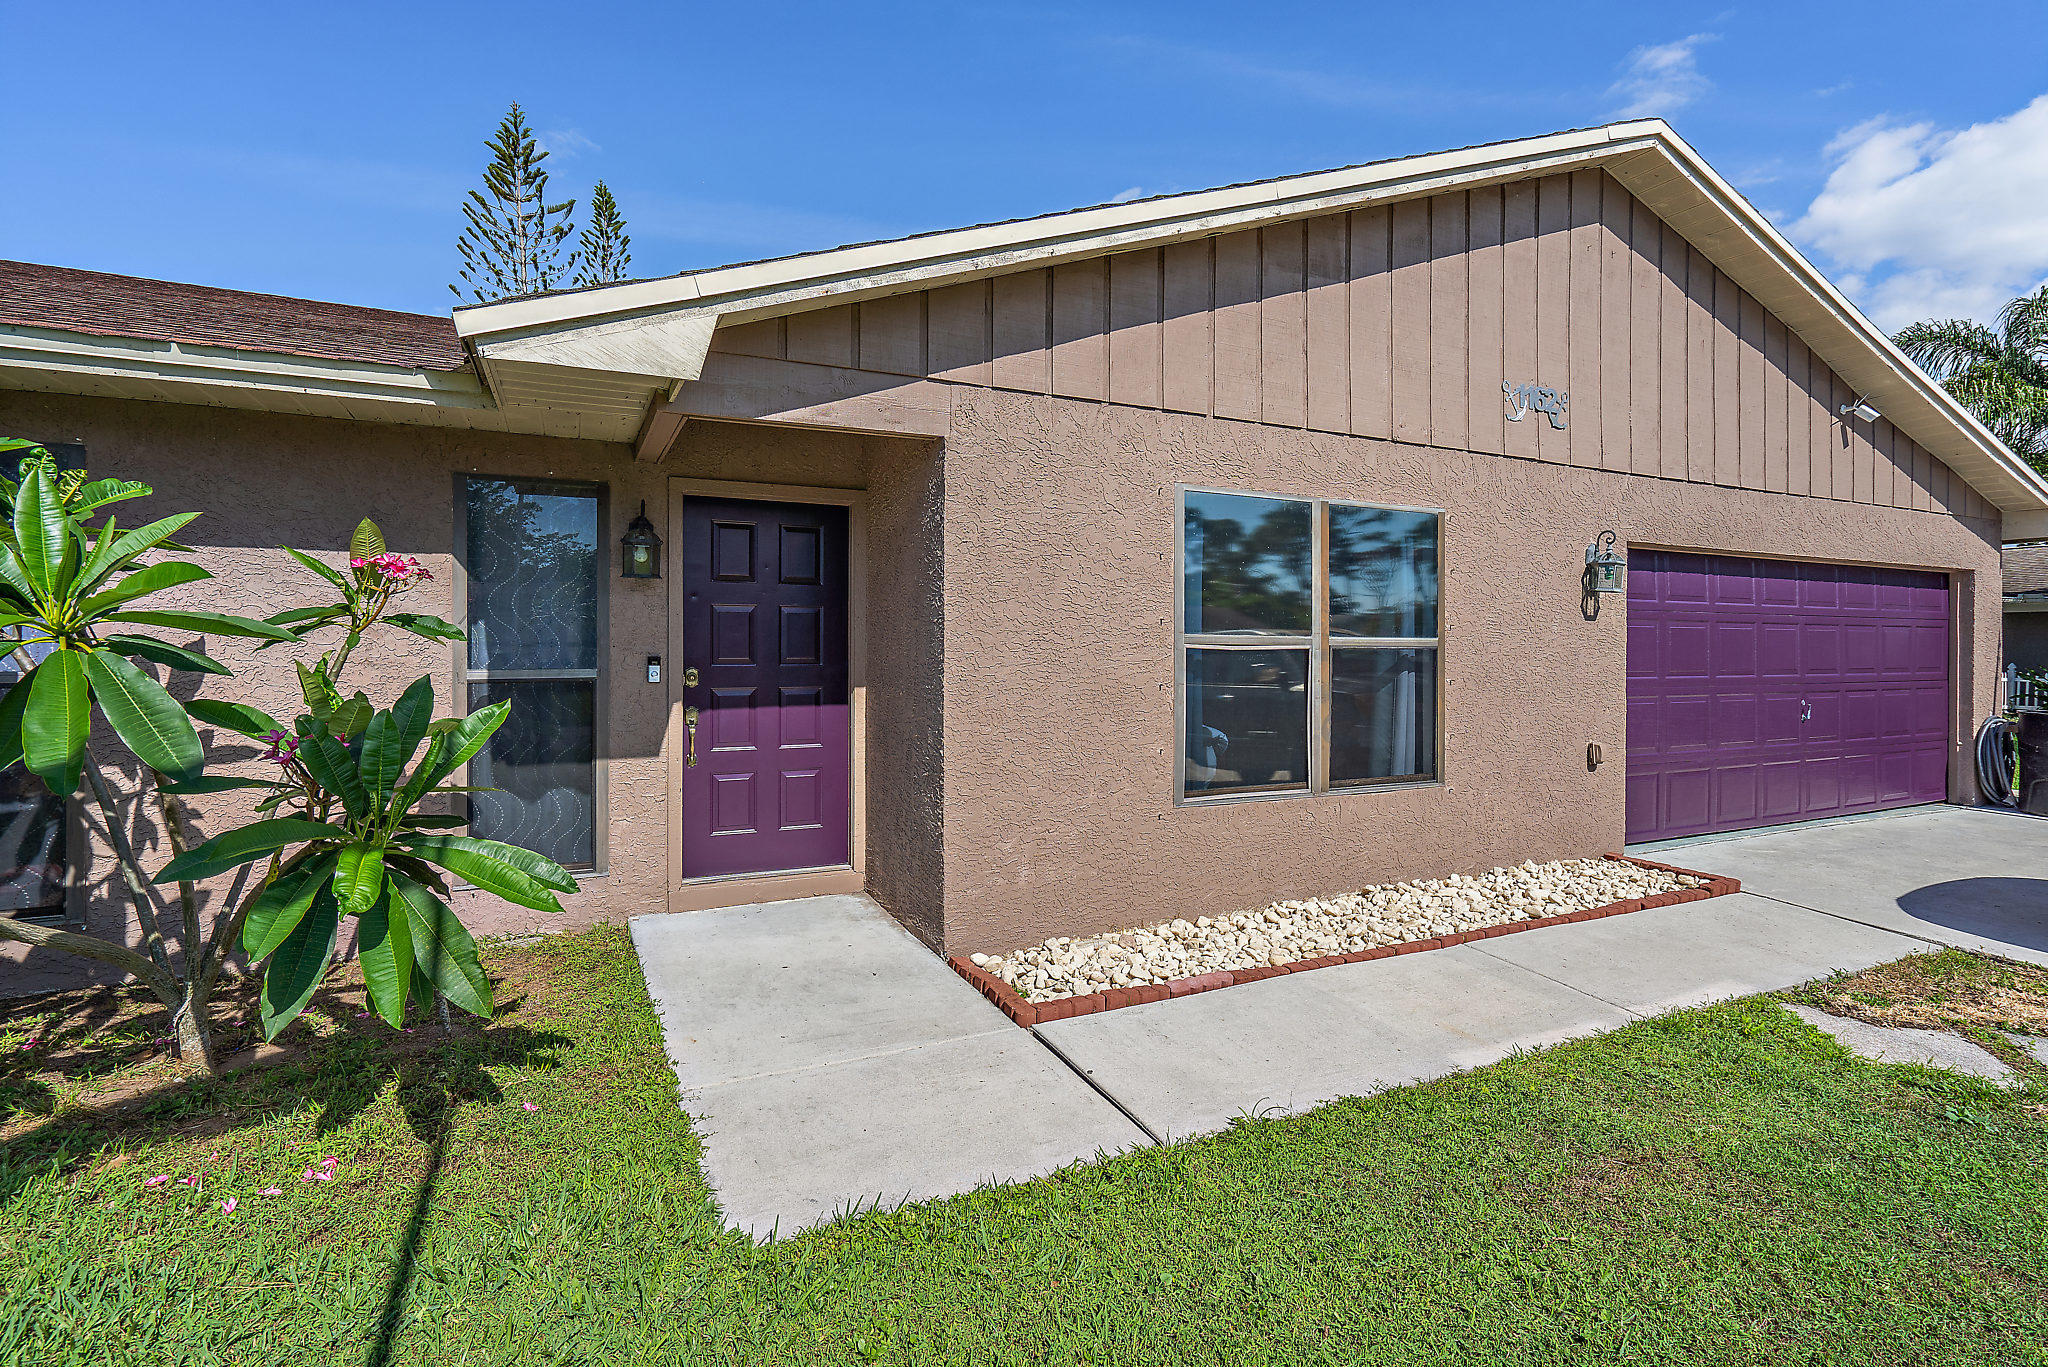 SUPER NICE MOVE IN READY! Lots of space, storage & light w/ vaulted ceilings, granite kitchen & wood cabinets, 2017 REEM 5-ton, 21 Seer AC w/ Reme Halo filtration system w/ lifetime condenser warranty & wifi thermostat, large master suite is private w/ split floor-plan and has vaulted ceiling, large walk in closet and remodeled bathroom. Ring doorbell, camera on garage.  20x18 screened patio, extended driveway pad, 2 sheds included. Quiet street yet close to everything, Crosstown Pkwy, US1-Beach, Shopping & Dining. ELECTRIC BILL WAS $132 IN JUNE, WATER BILL WAS $25! Super energy efficient home!